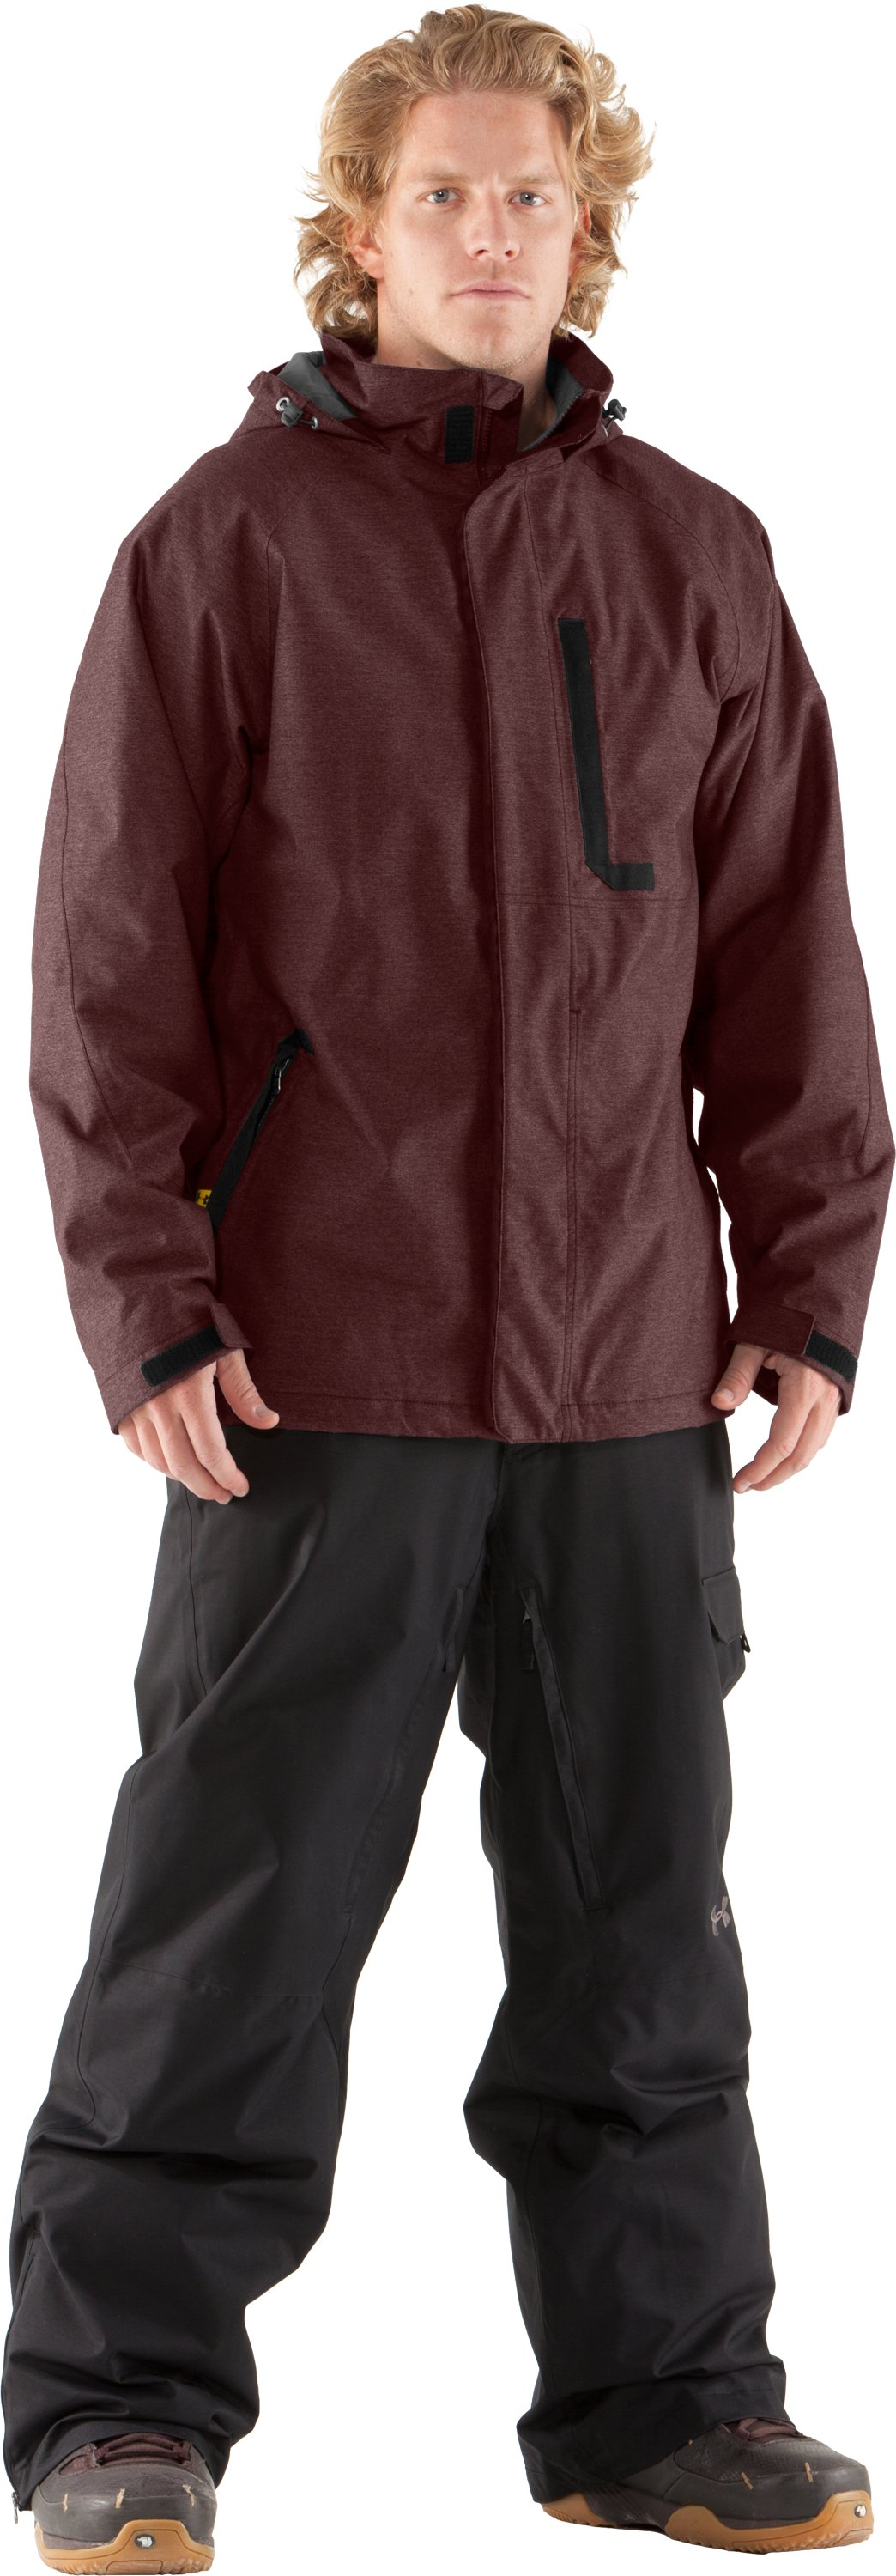 Men's UA Sandman Jacket, Prune, zoomed image